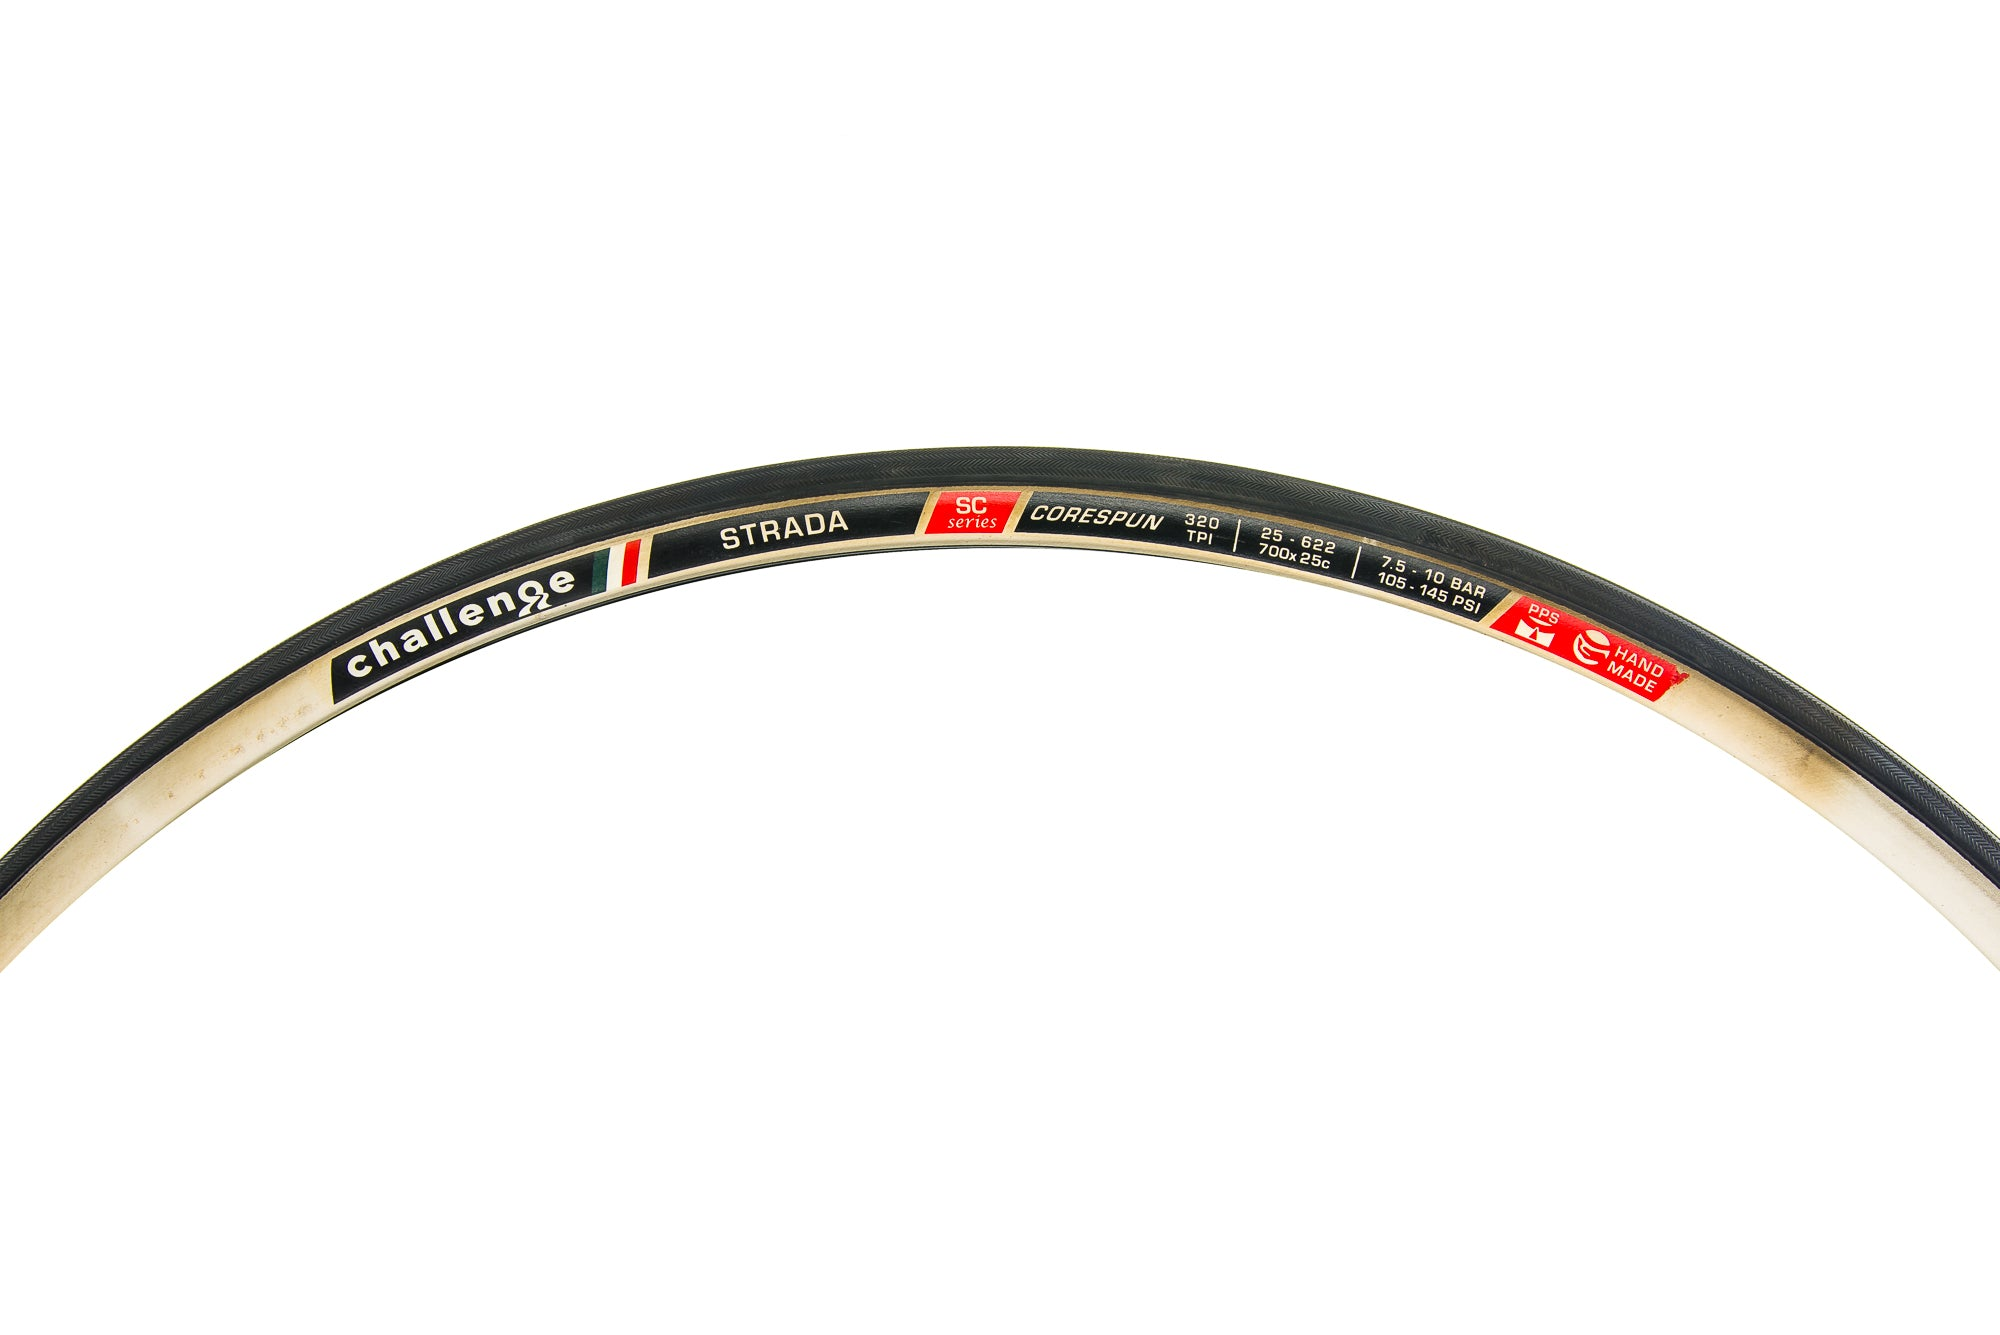 Challenge Strada SC Series Tire 700x25c 320 TPI Clincher Black/Cream - Pre-Owned